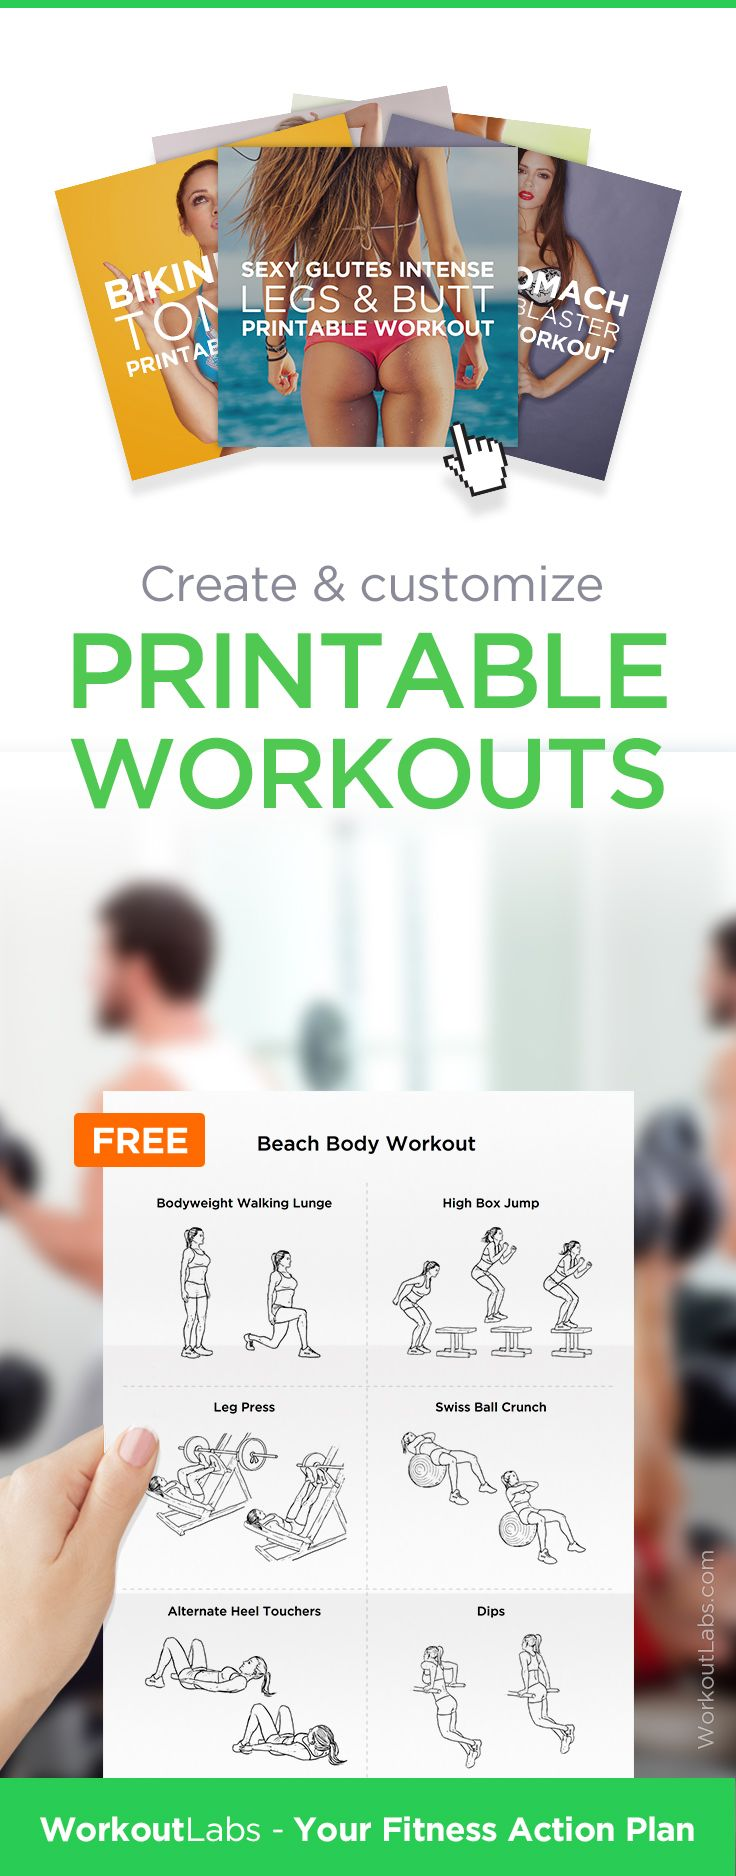 Create And Customize Printable Workout Plans With Exercise